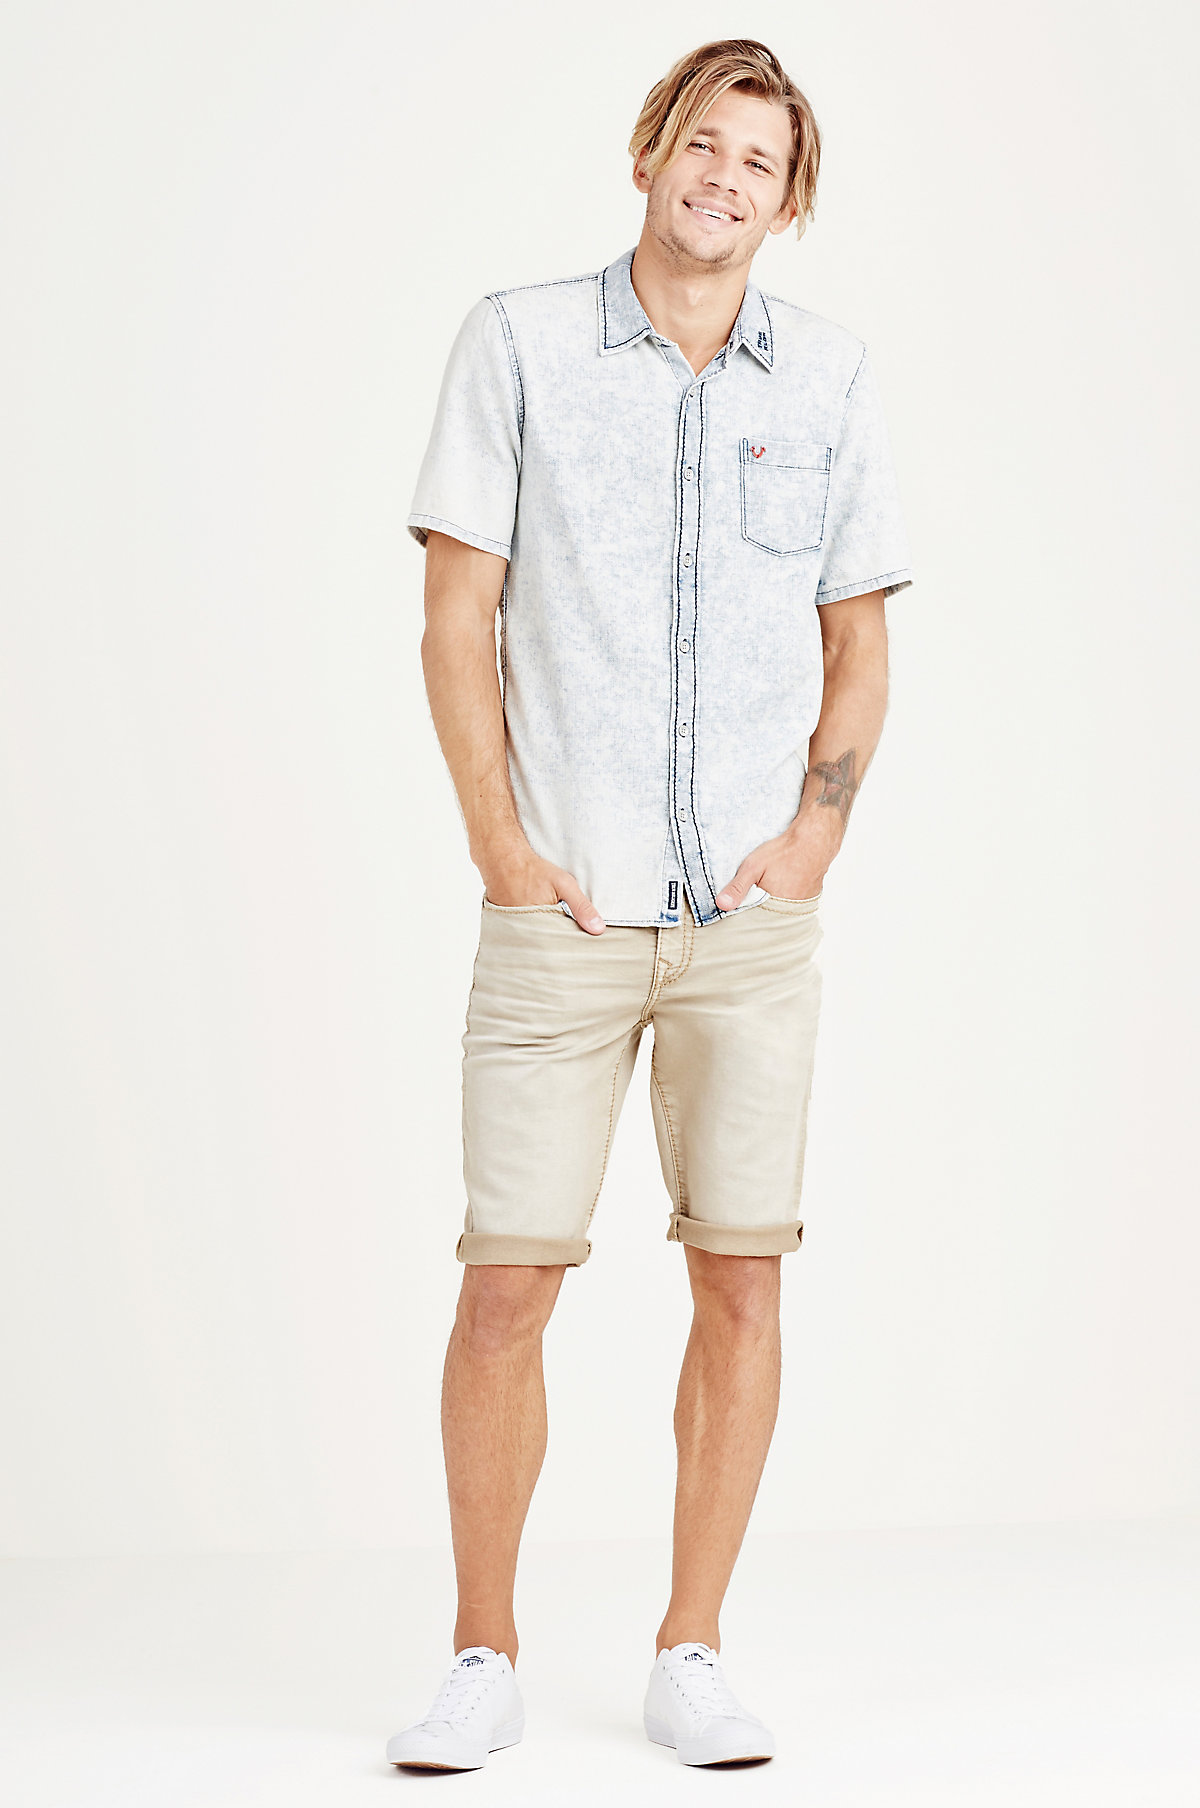 True-Religion-Men-039-s-Short-Sleeve-Button-Up-Woven-Shirt thumbnail 9